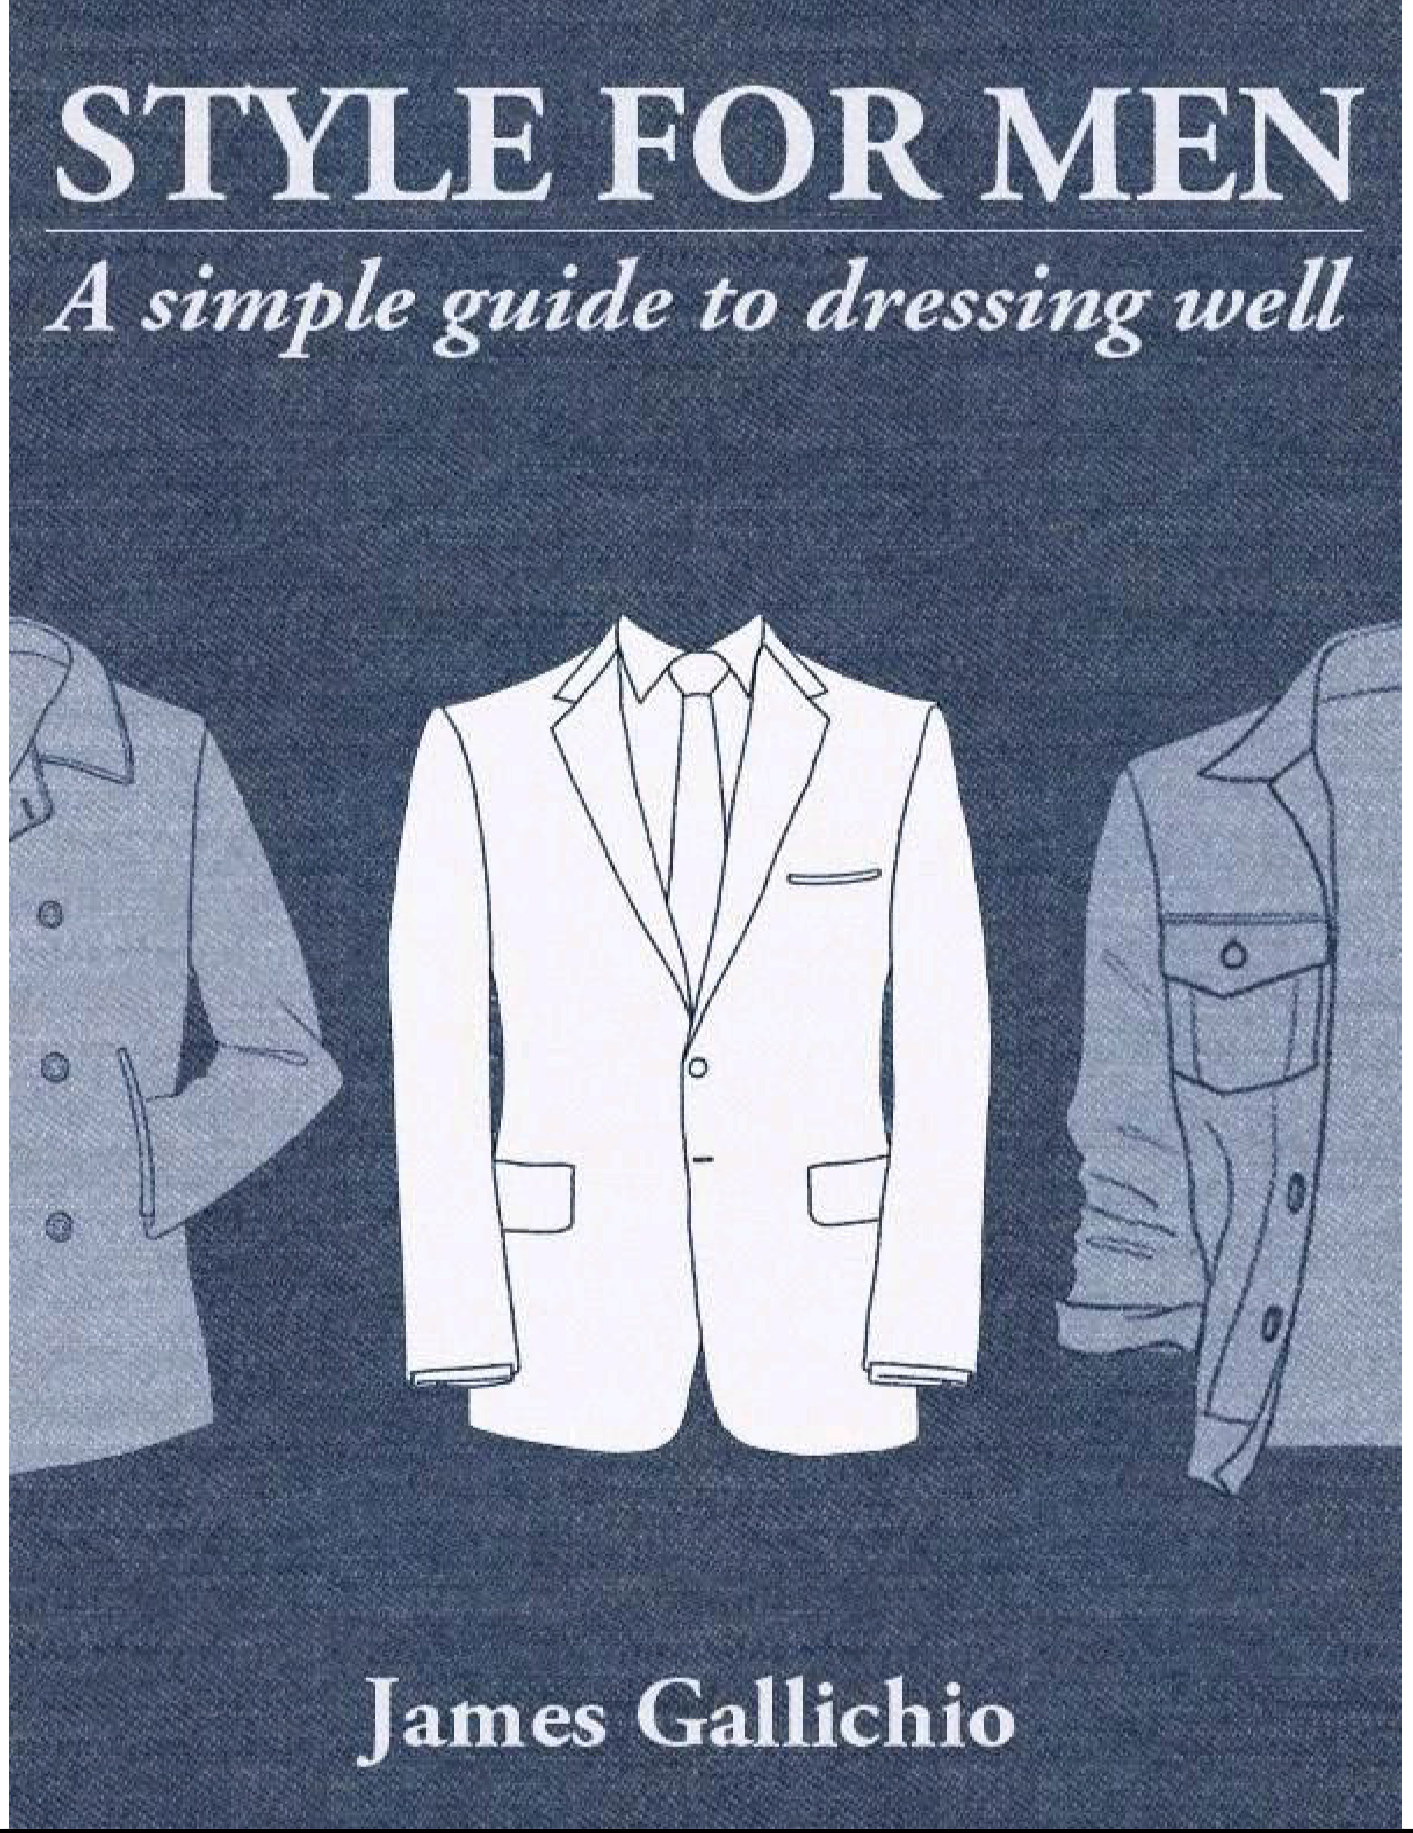 Style for Men: A simple guide to dressing well